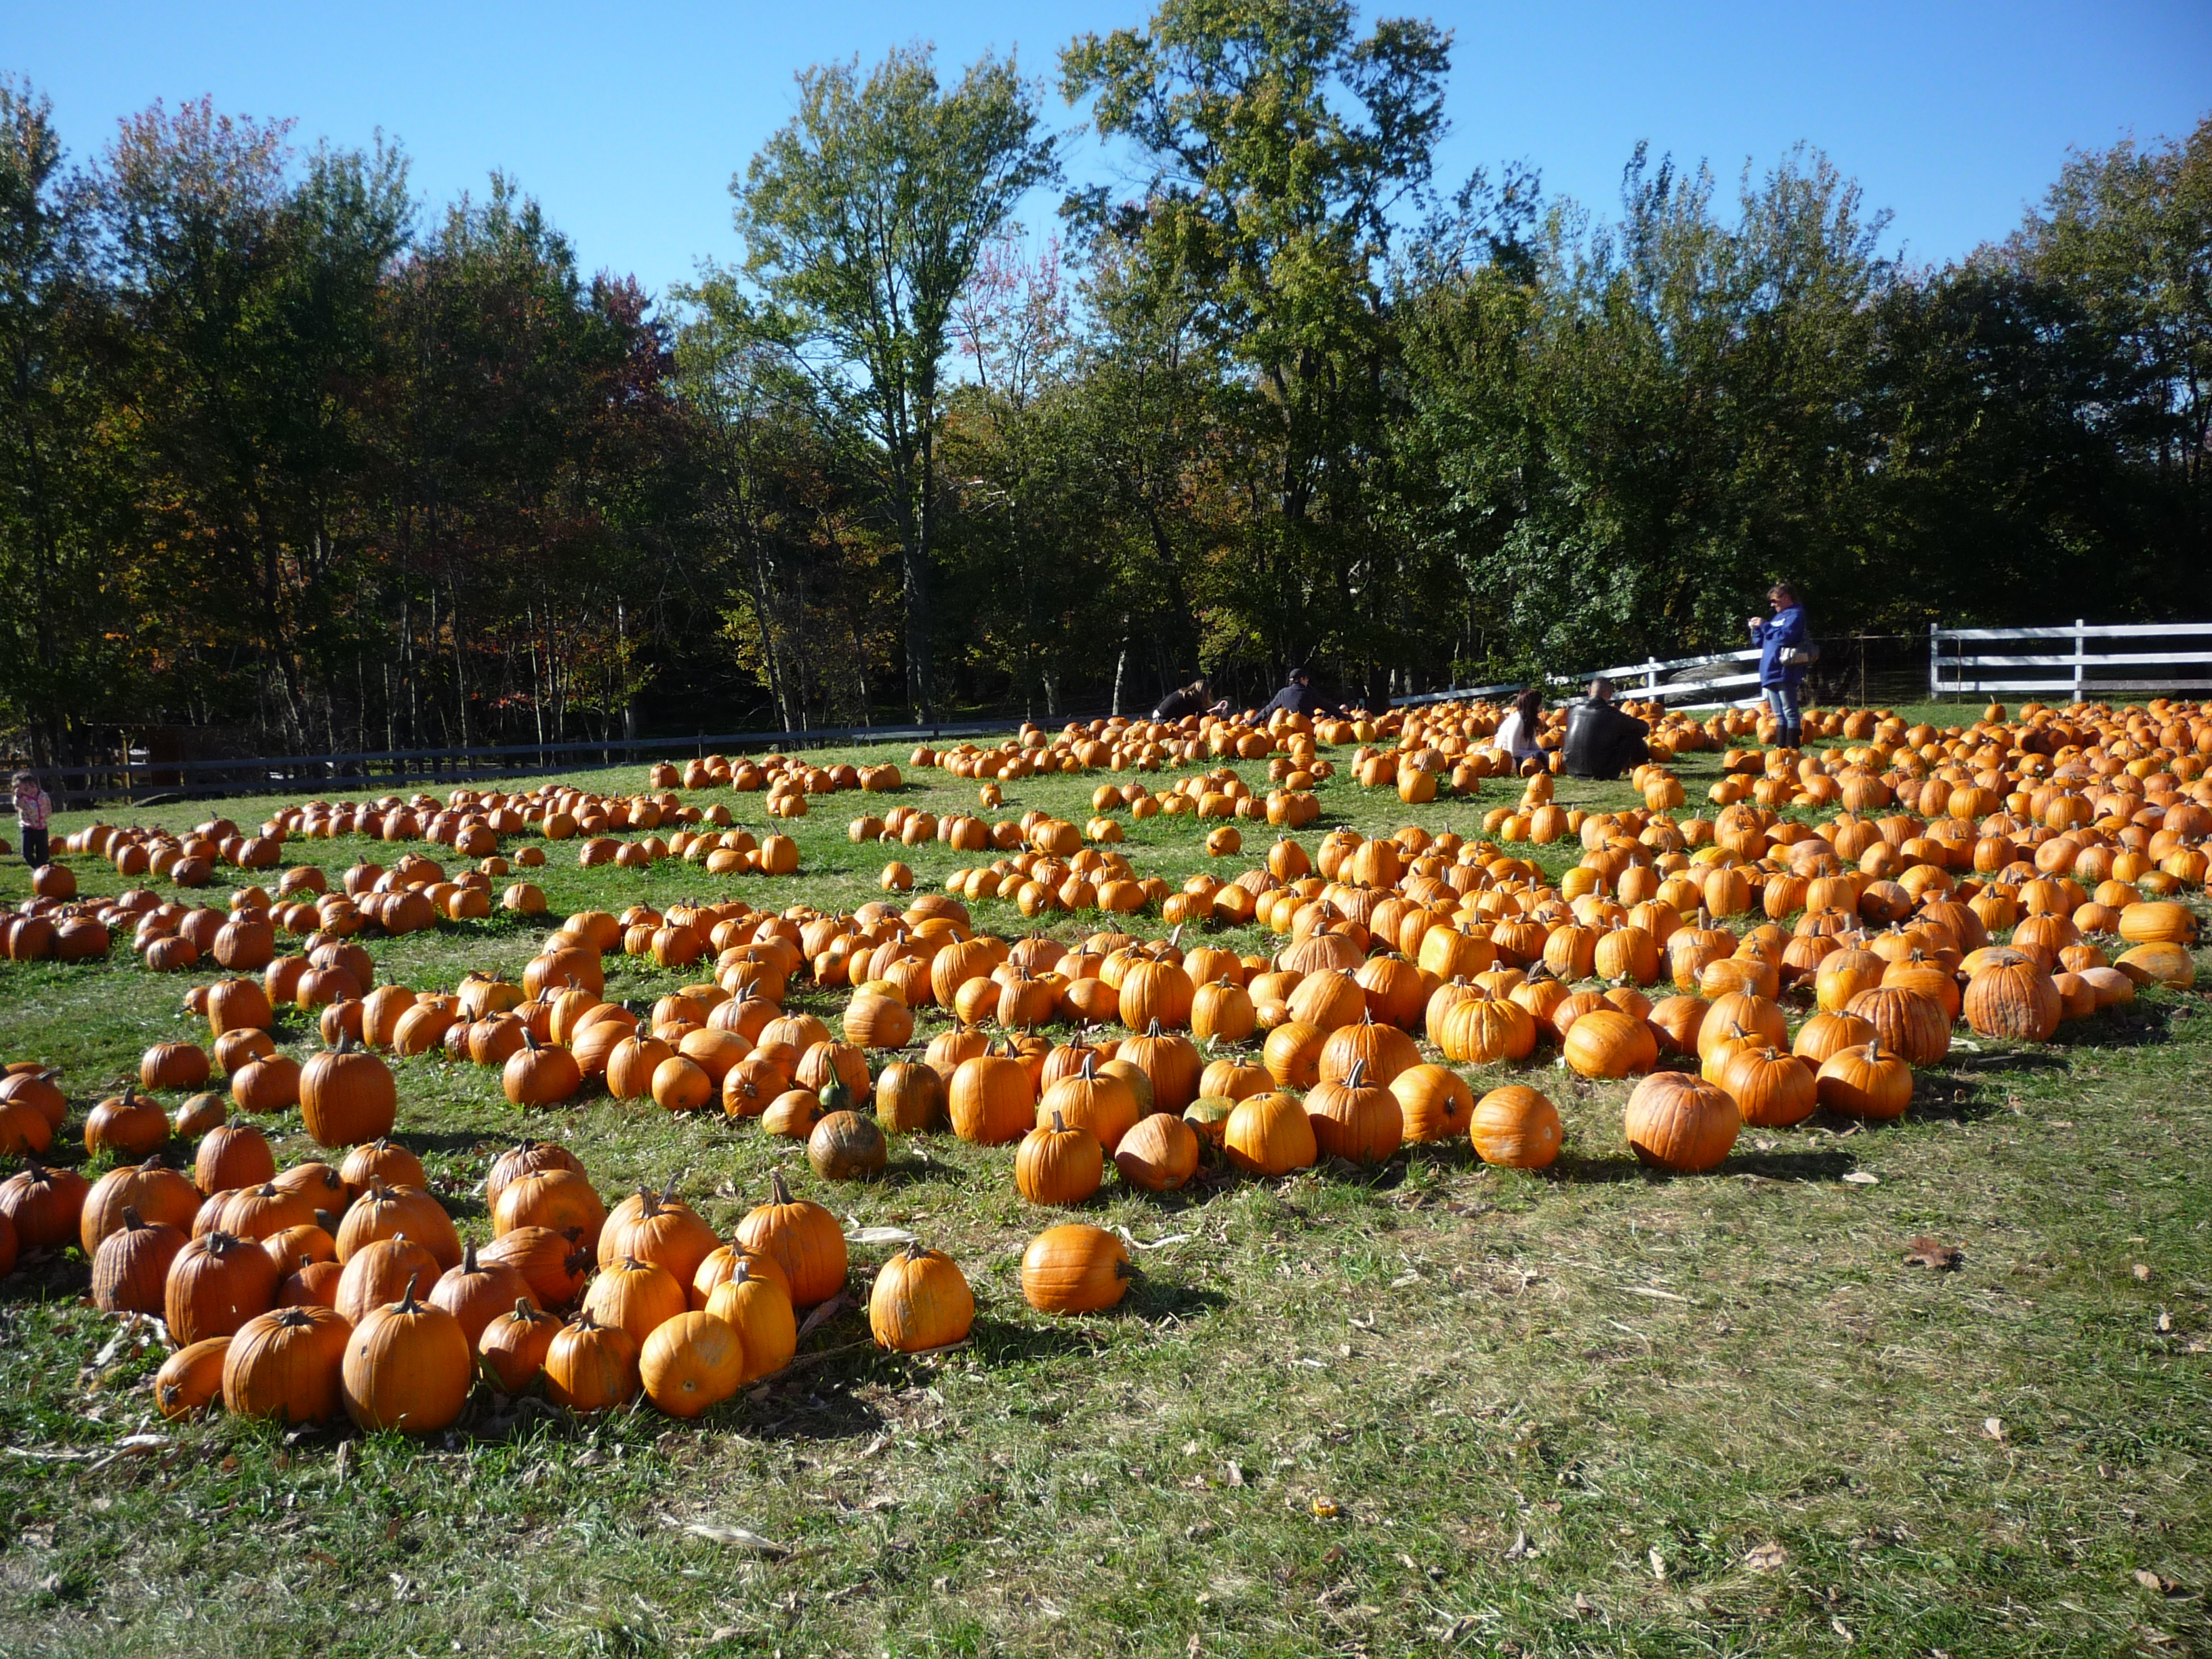 A Fall Road Trip To Adams Farm in Cumberland, R.I.